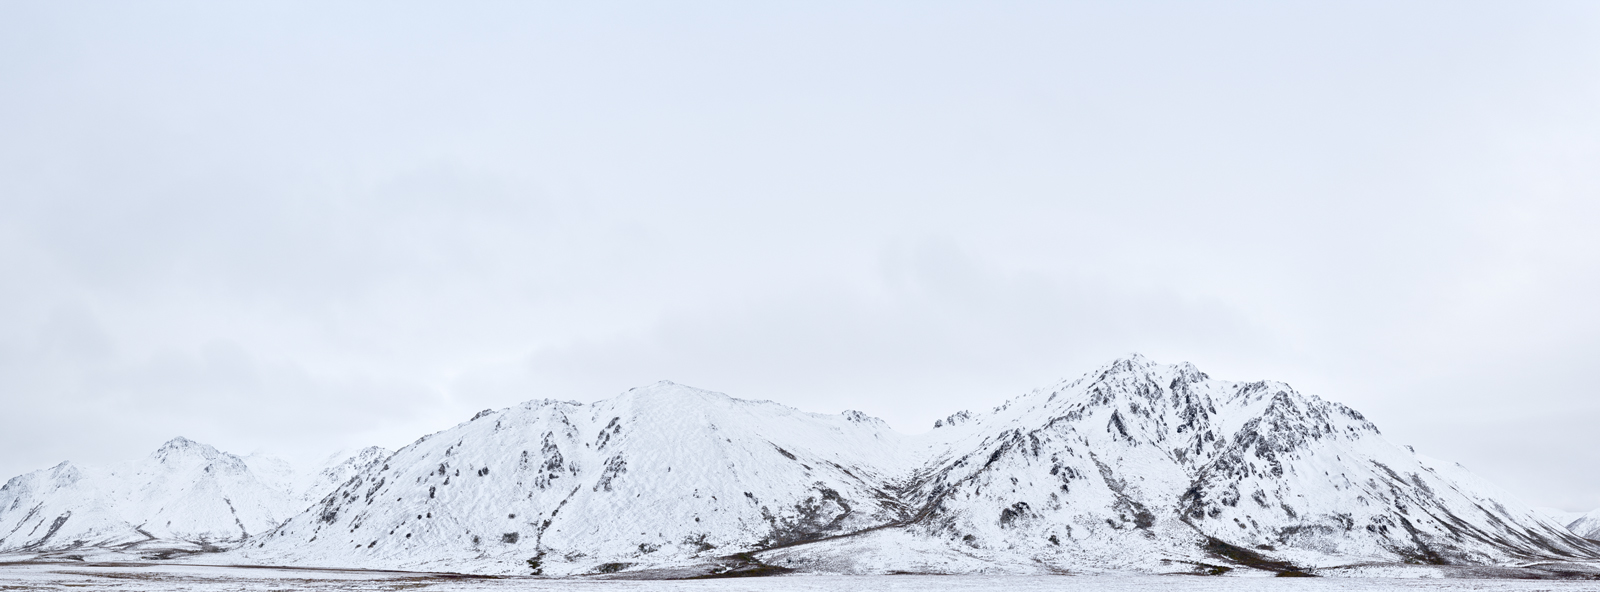 panoramic, landscape, snow, winter, blackstone, mountains, monochrome, yukon, canada, paysage, panoramique, neige, hiver, photo